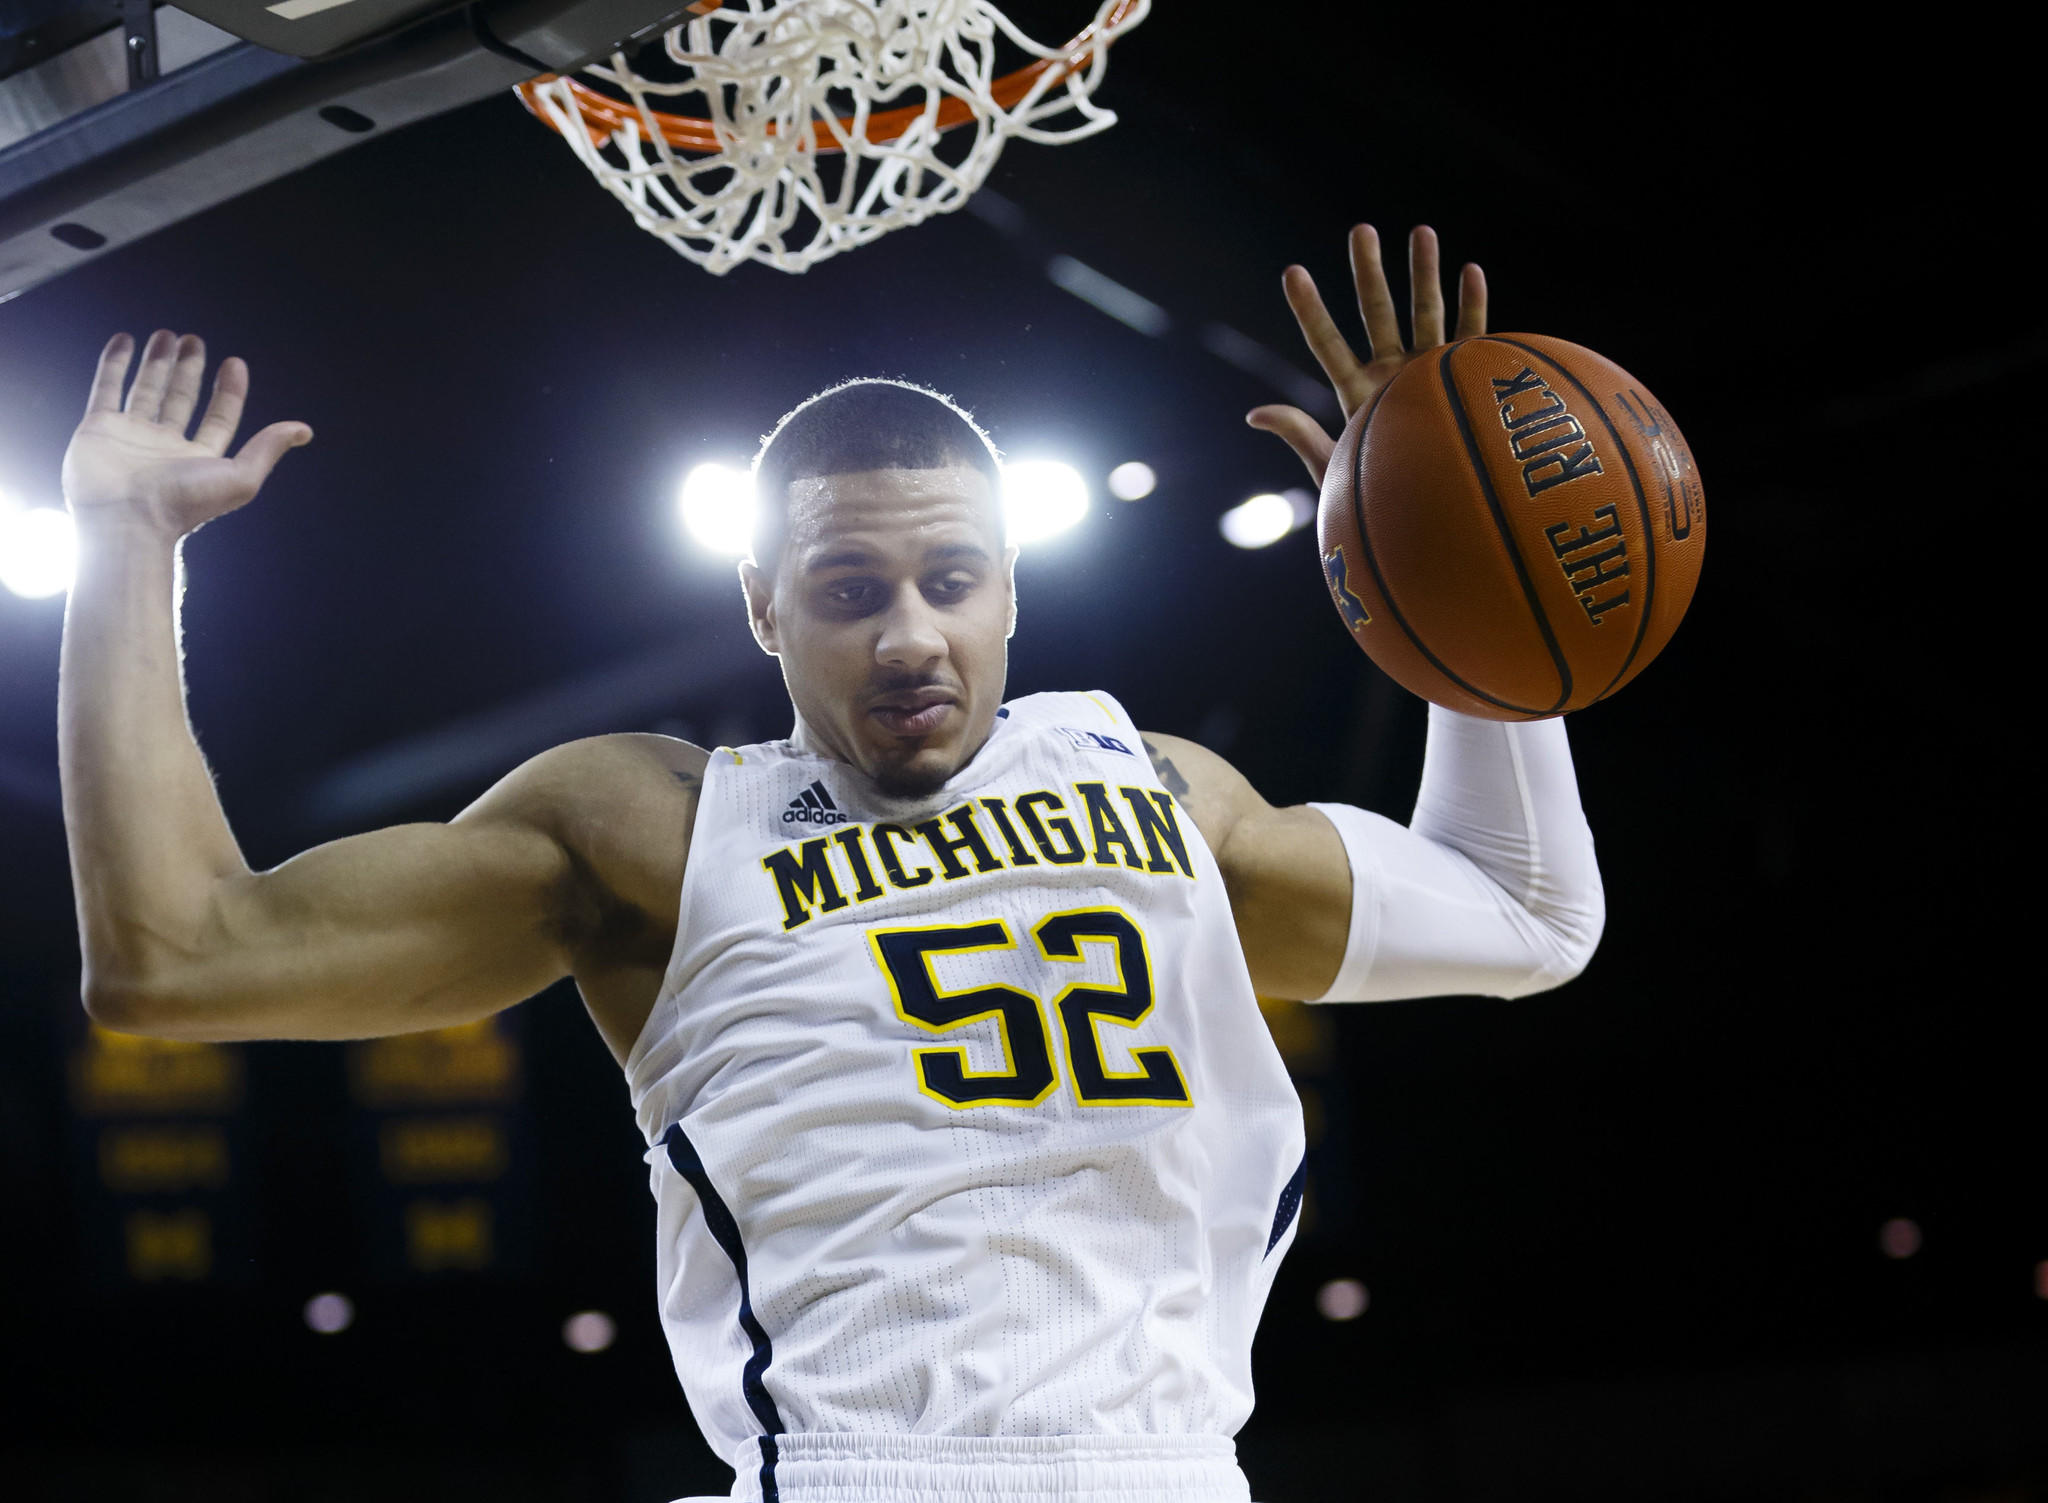 Michigan's Jordan Morgan dunks in the first half against Purdue.